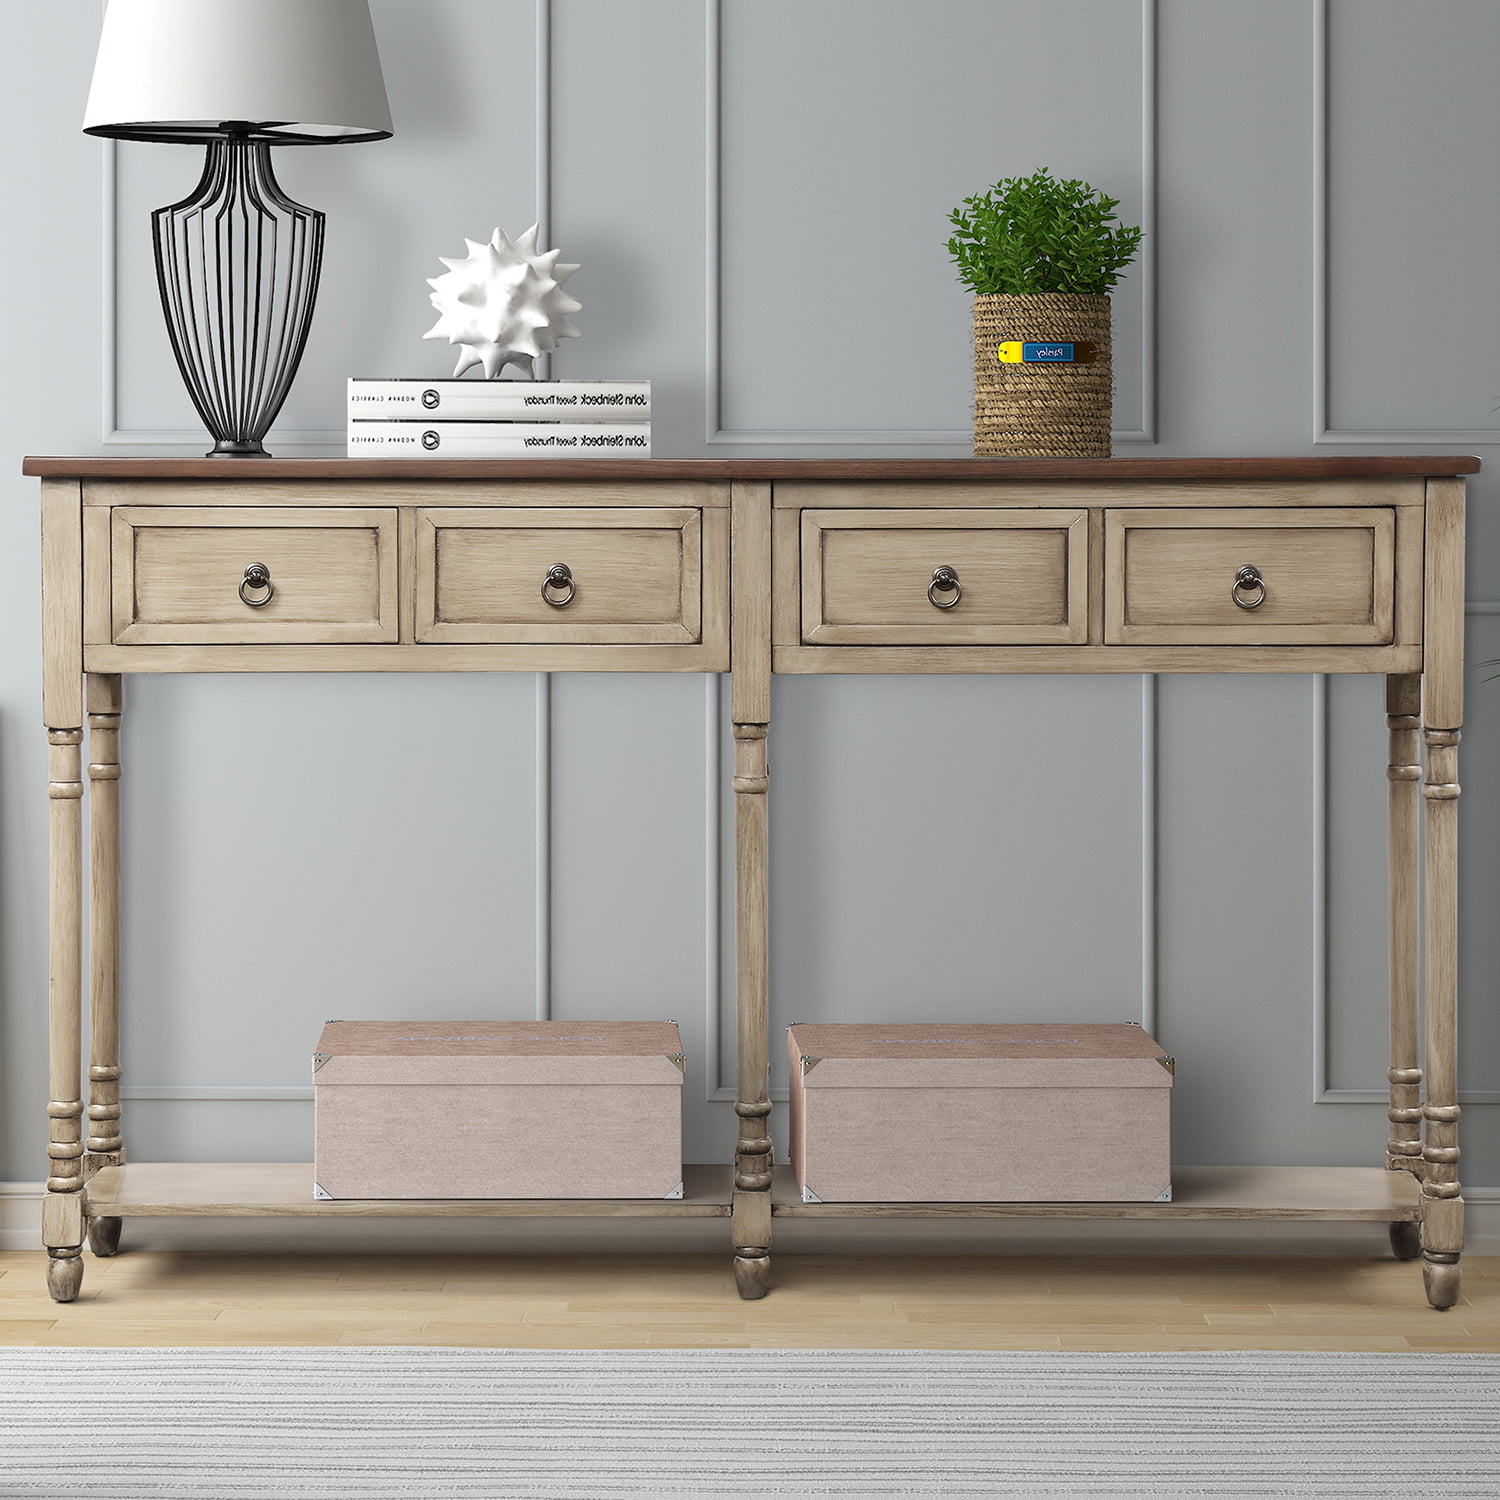 Picture of: Tall Console Table With 2 Big Storage Drawers 58 X 11 X 34 Wood Buffet Sideboard Desk W Bottom Shelf Retro Tall Parsons Console Table Accent Table For Entryway 99lbs Antique Grey S6393